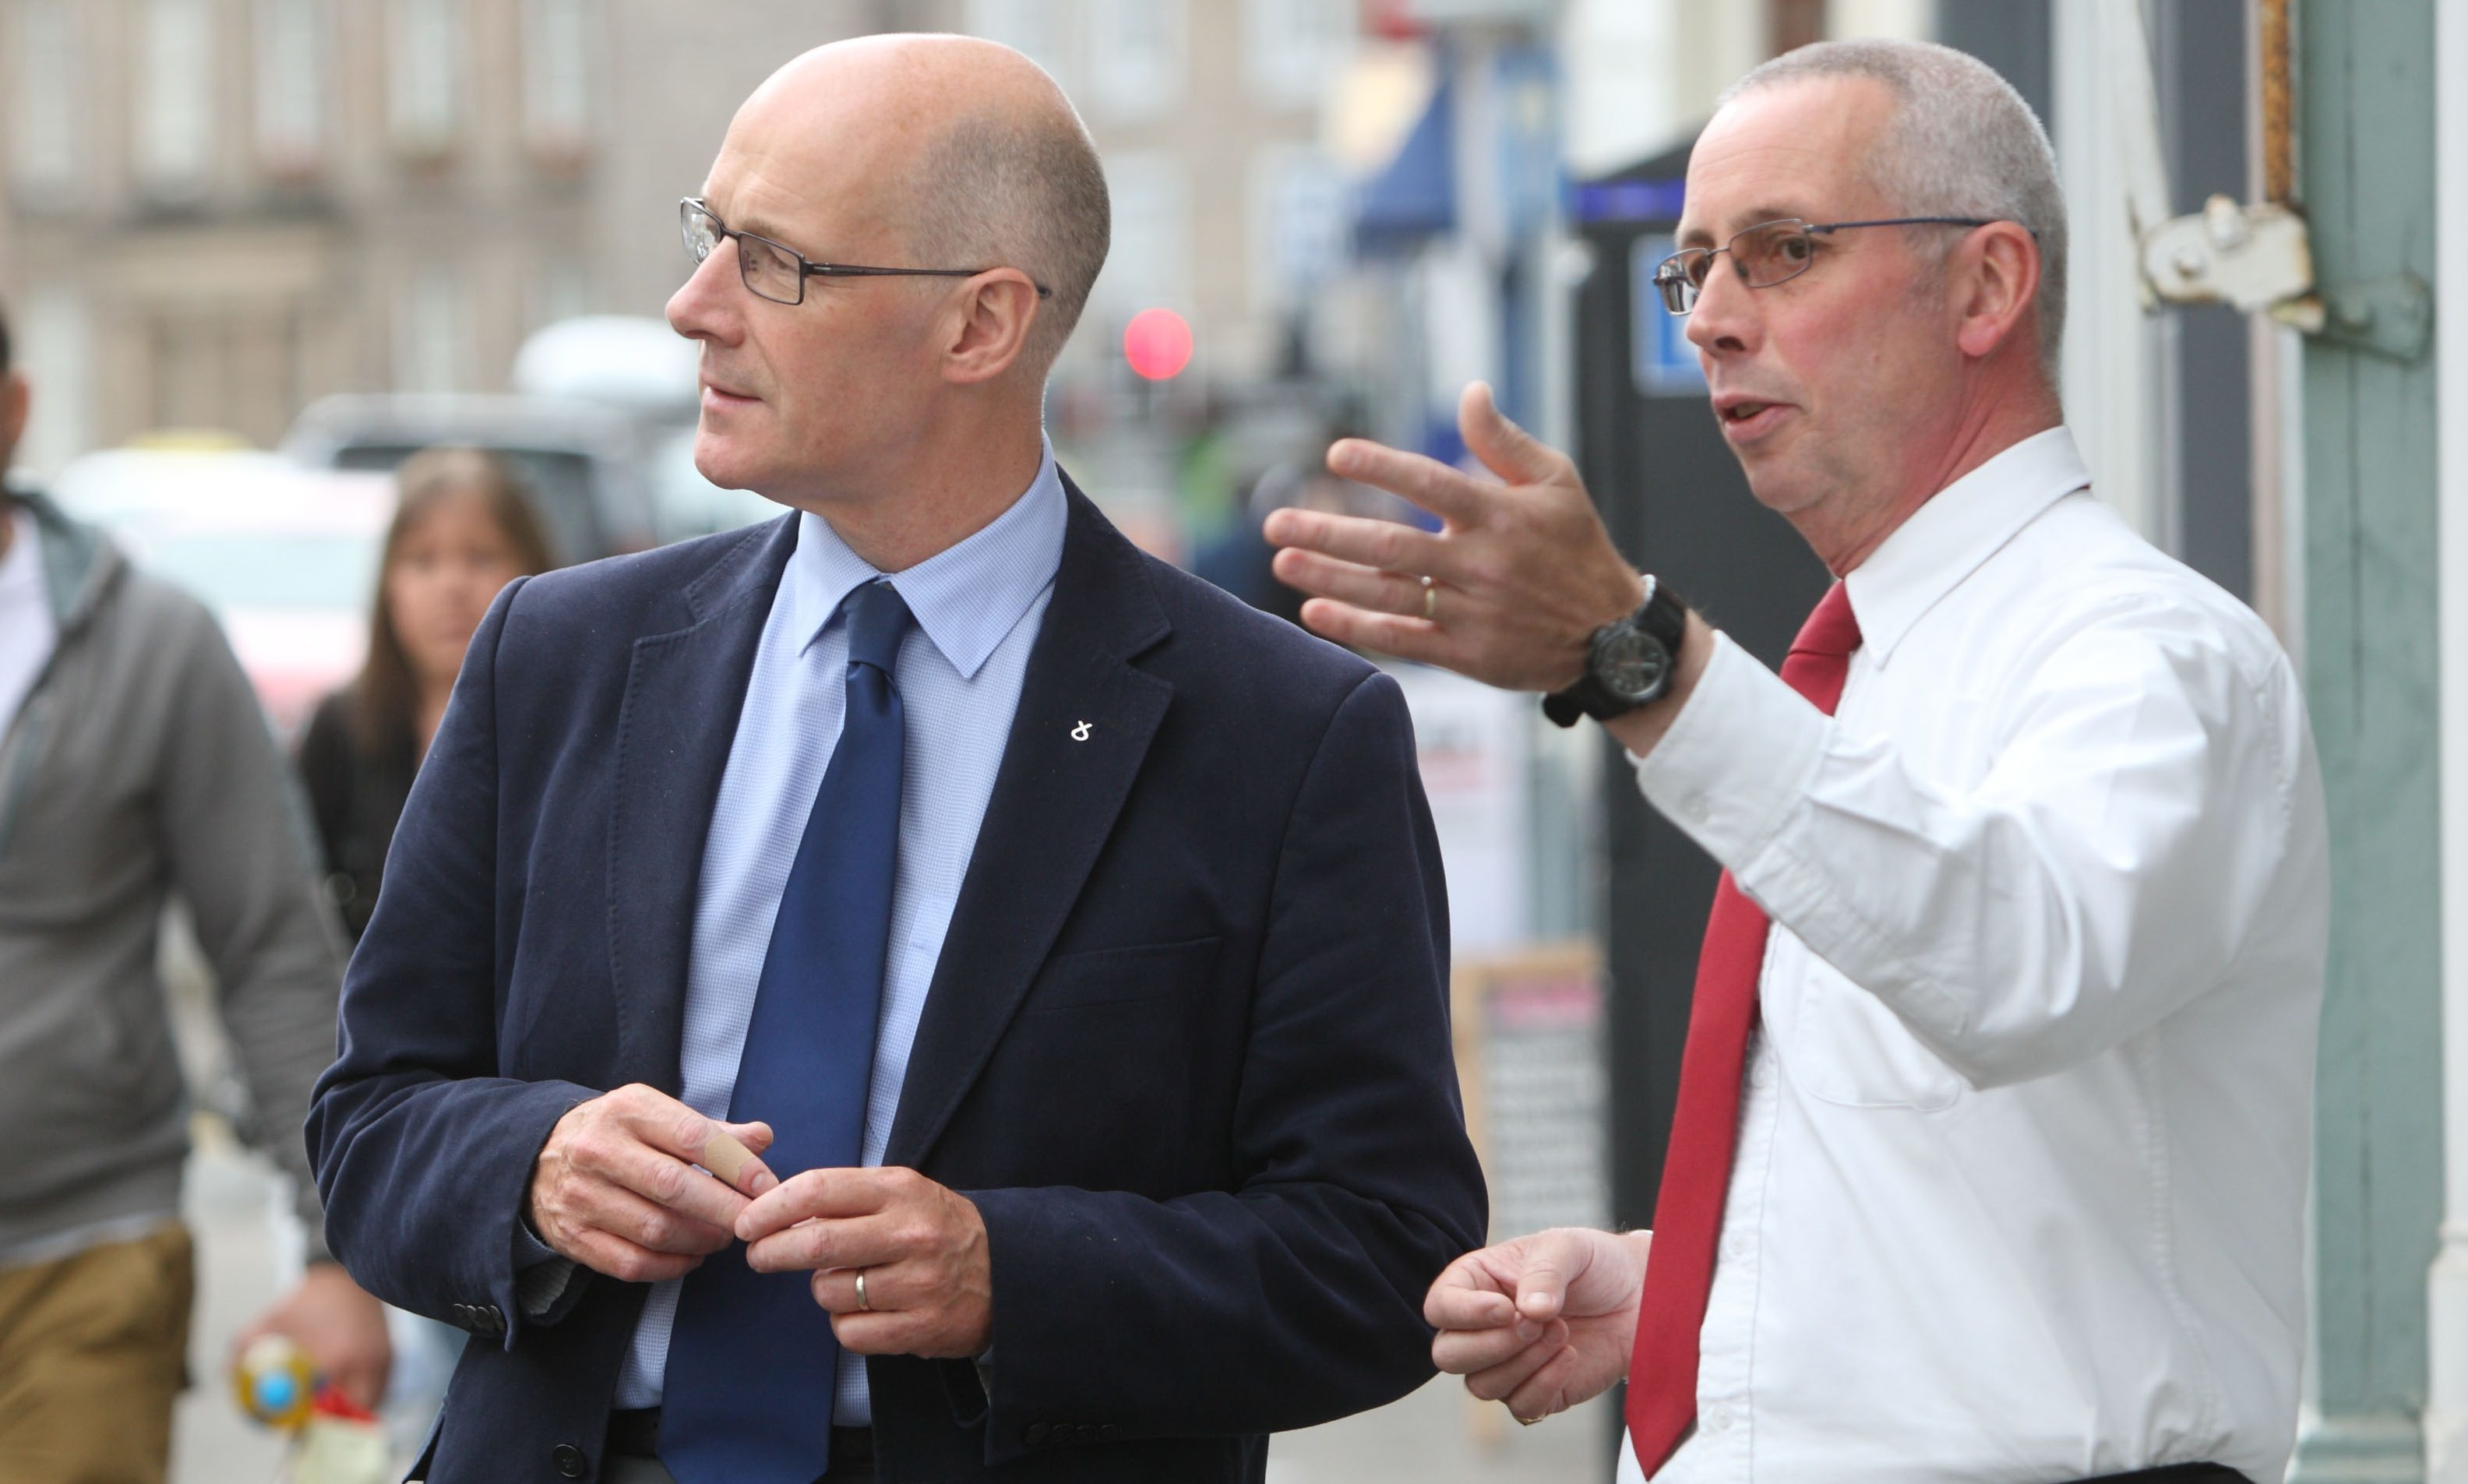 Deputy First Minister John swinney MSP, left, with Keith Fergie in Perth.